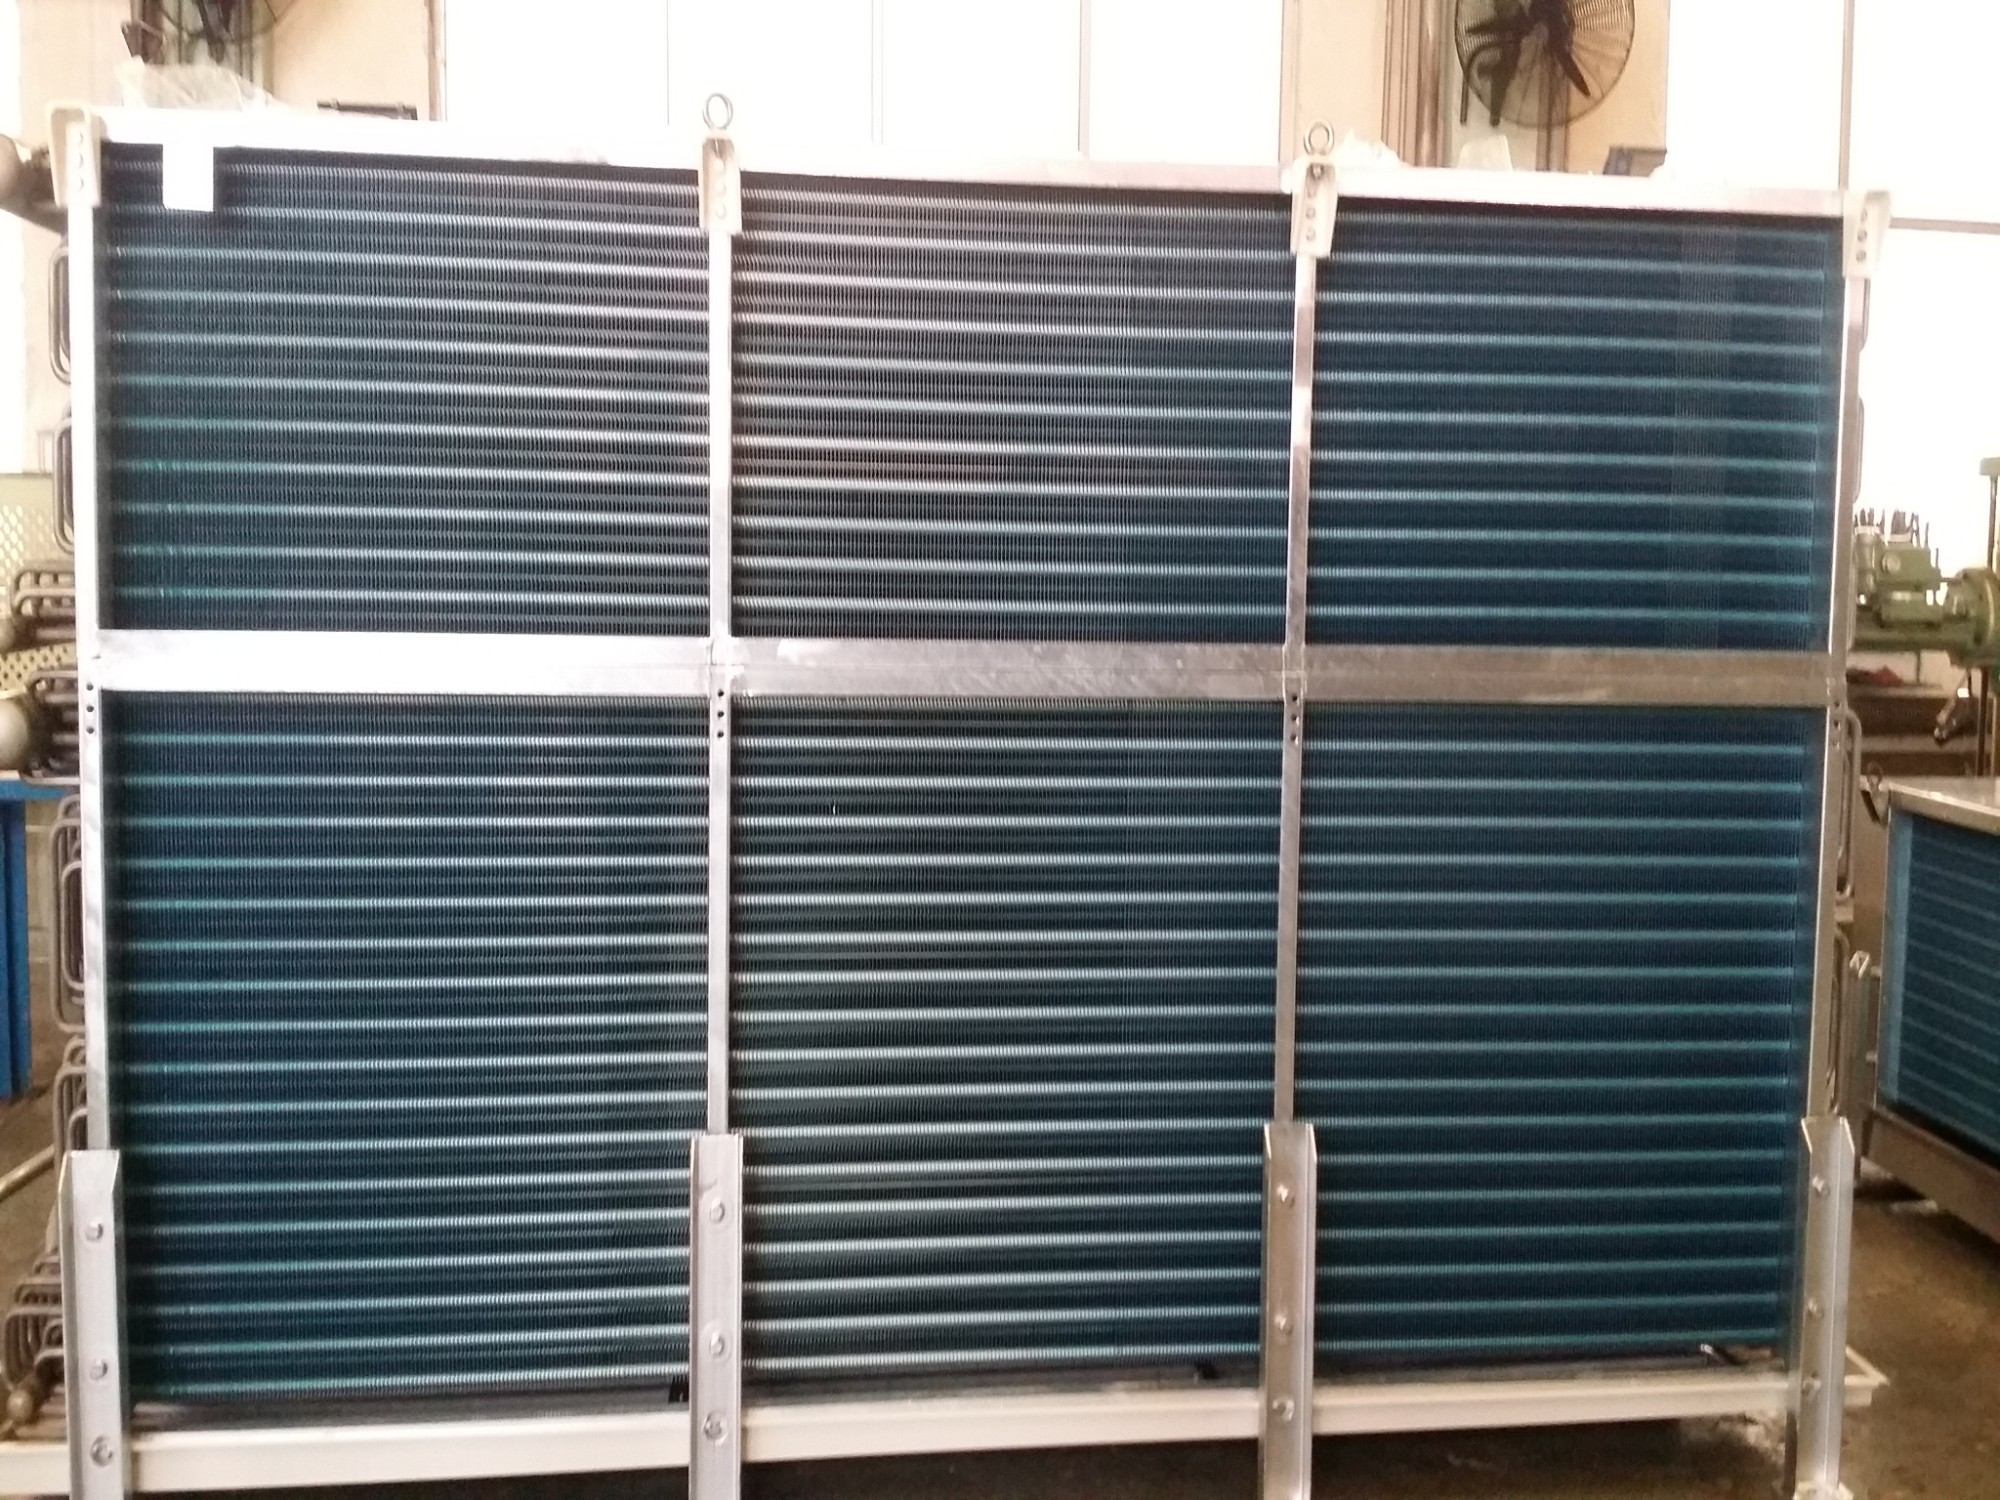 K-TYPE HEAVY DUTY FREON AIR COOLER Manufacturers, K-TYPE HEAVY DUTY FREON AIR COOLER Factory, Supply K-TYPE HEAVY DUTY FREON AIR COOLER